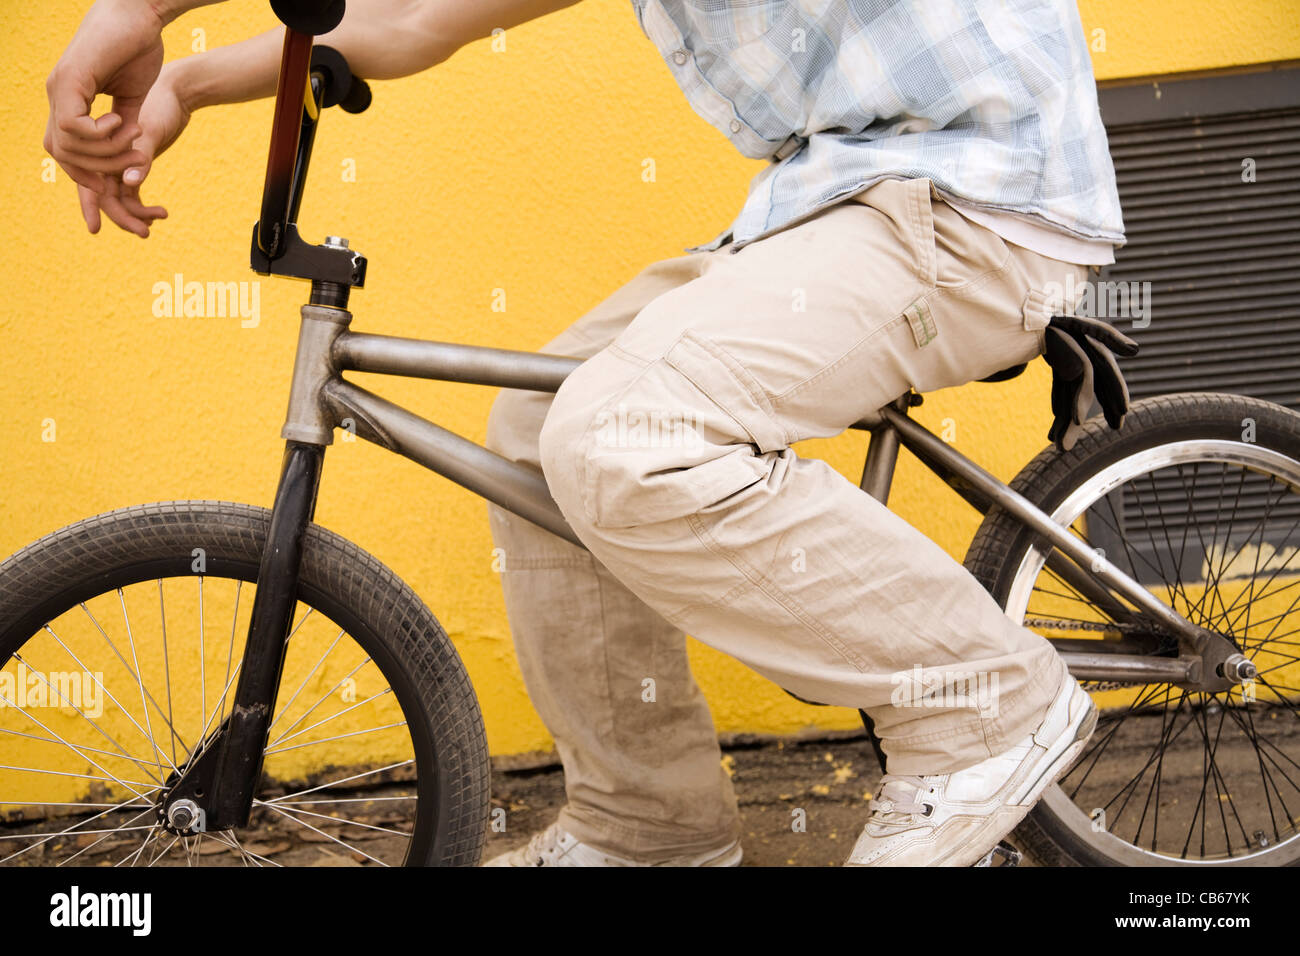 Bmx Biker Stock Photos & Bmx Biker Stock Images - Alamy